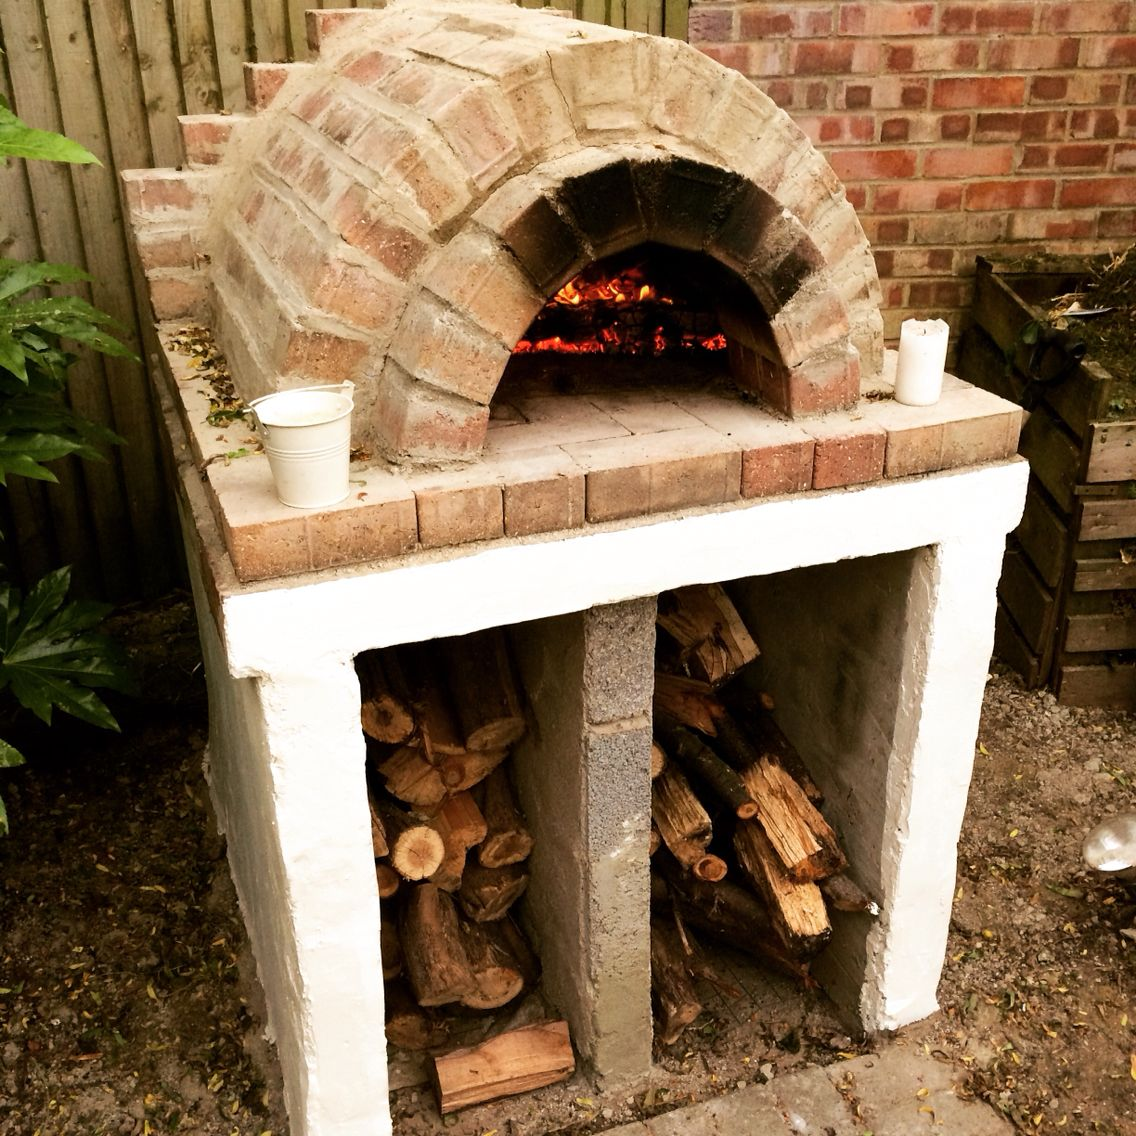 recycled homemade pizza oven ogr d pinterest garten ofen und pizzaofen. Black Bedroom Furniture Sets. Home Design Ideas